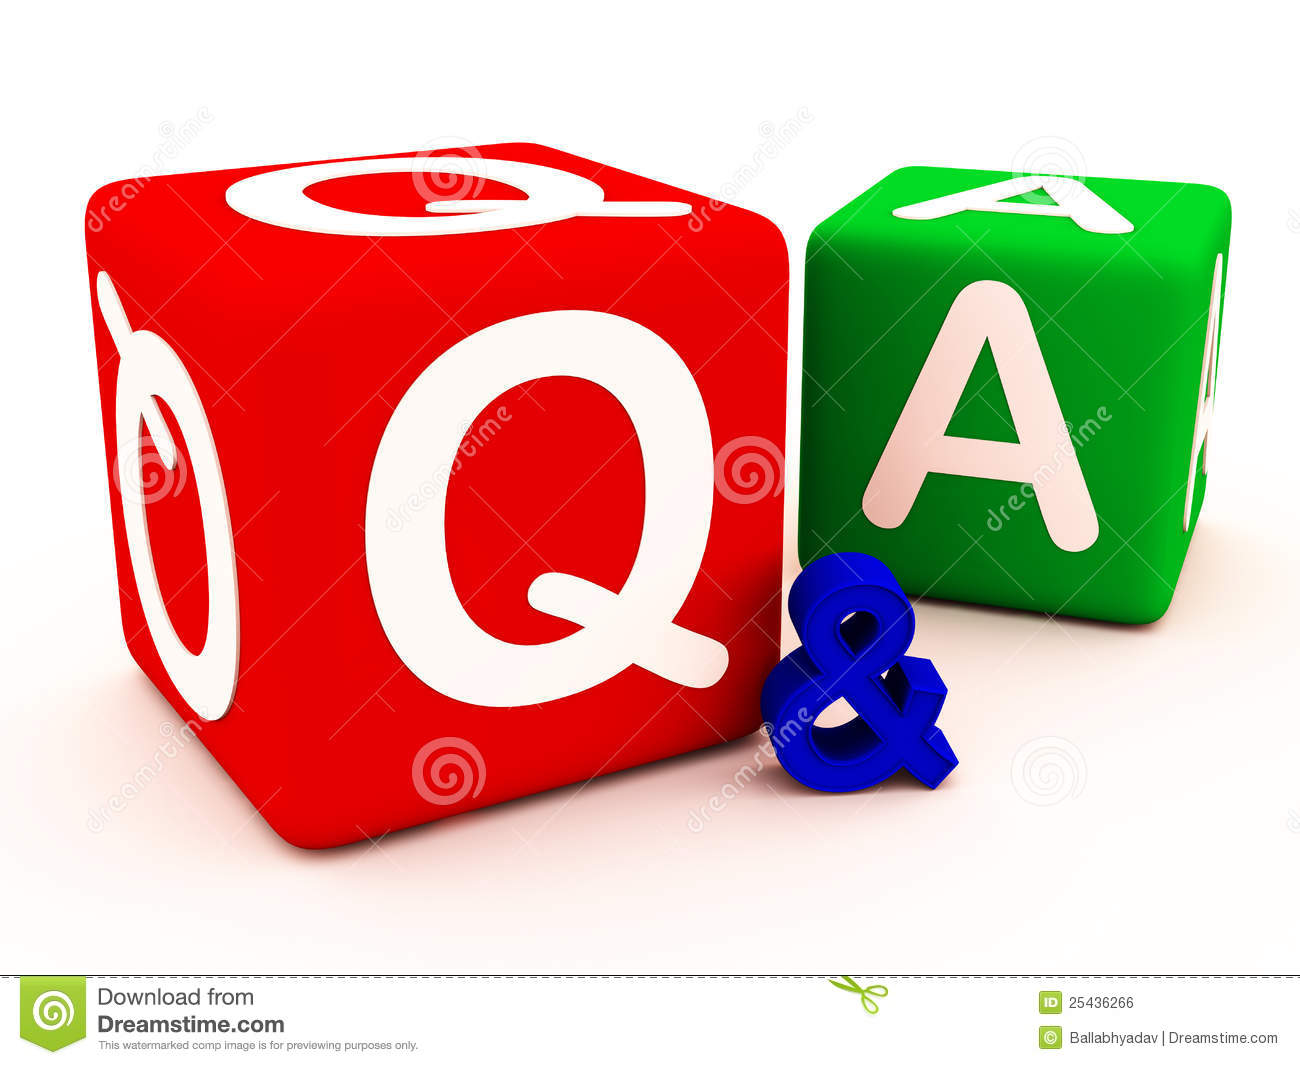 Q Amp A Questions Answers And Doubts Stock Illustration